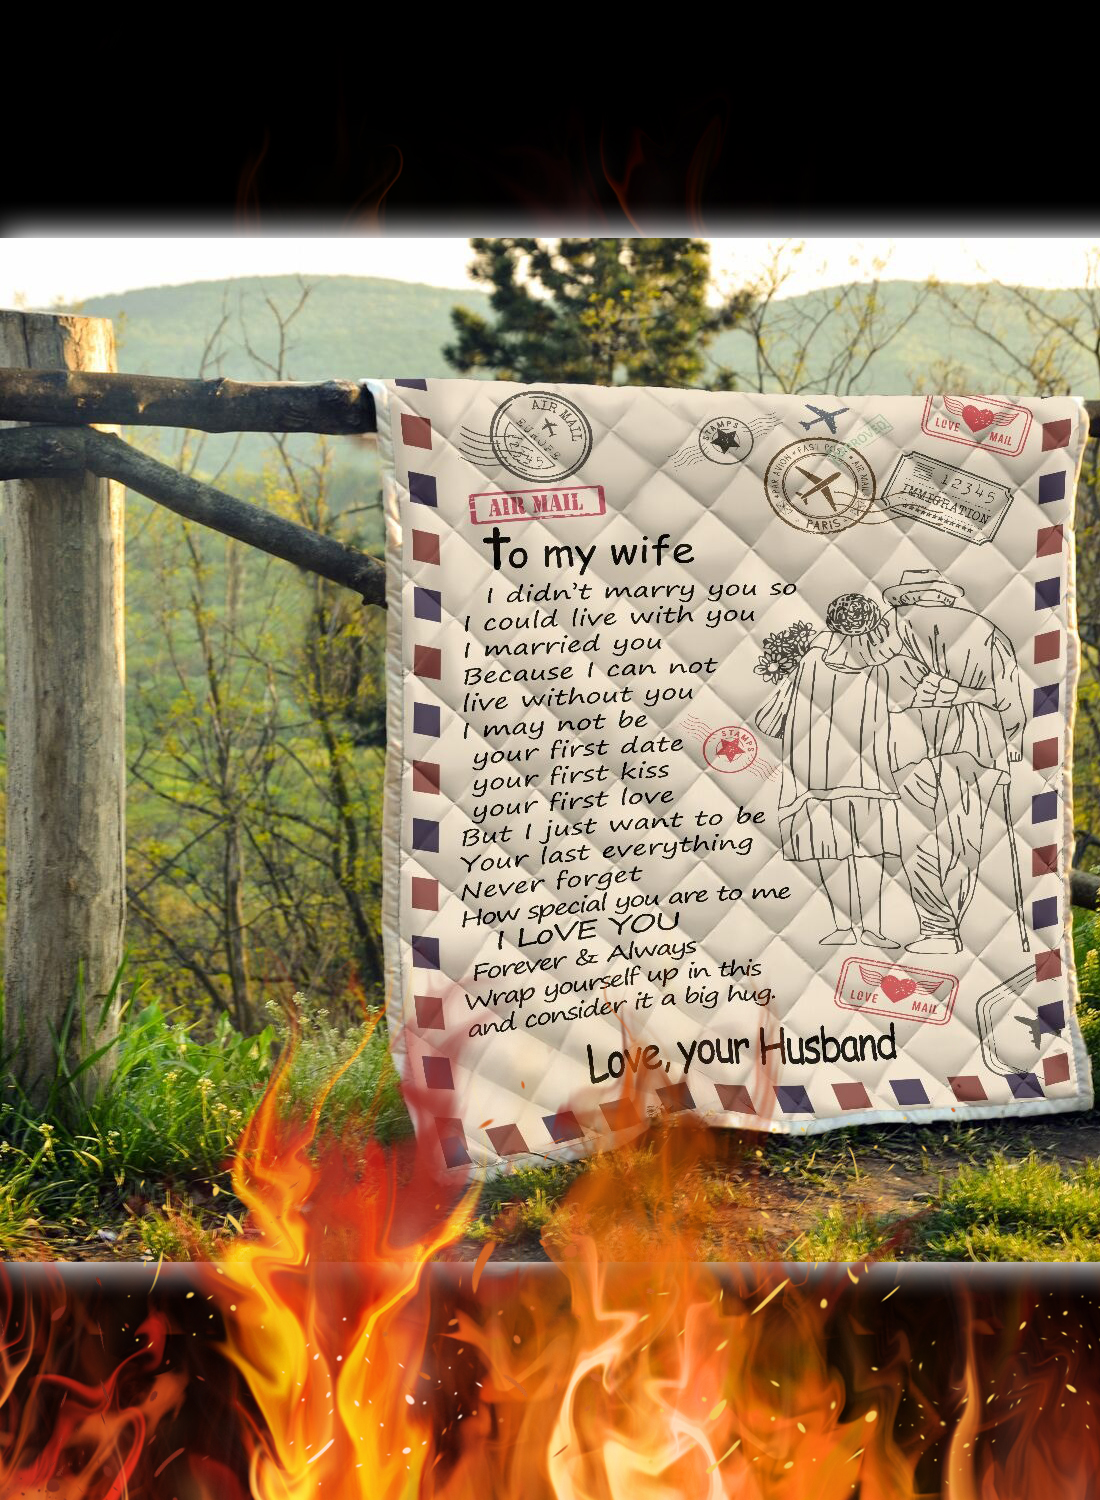 Letter air mail to my wife love your husband quilt 2